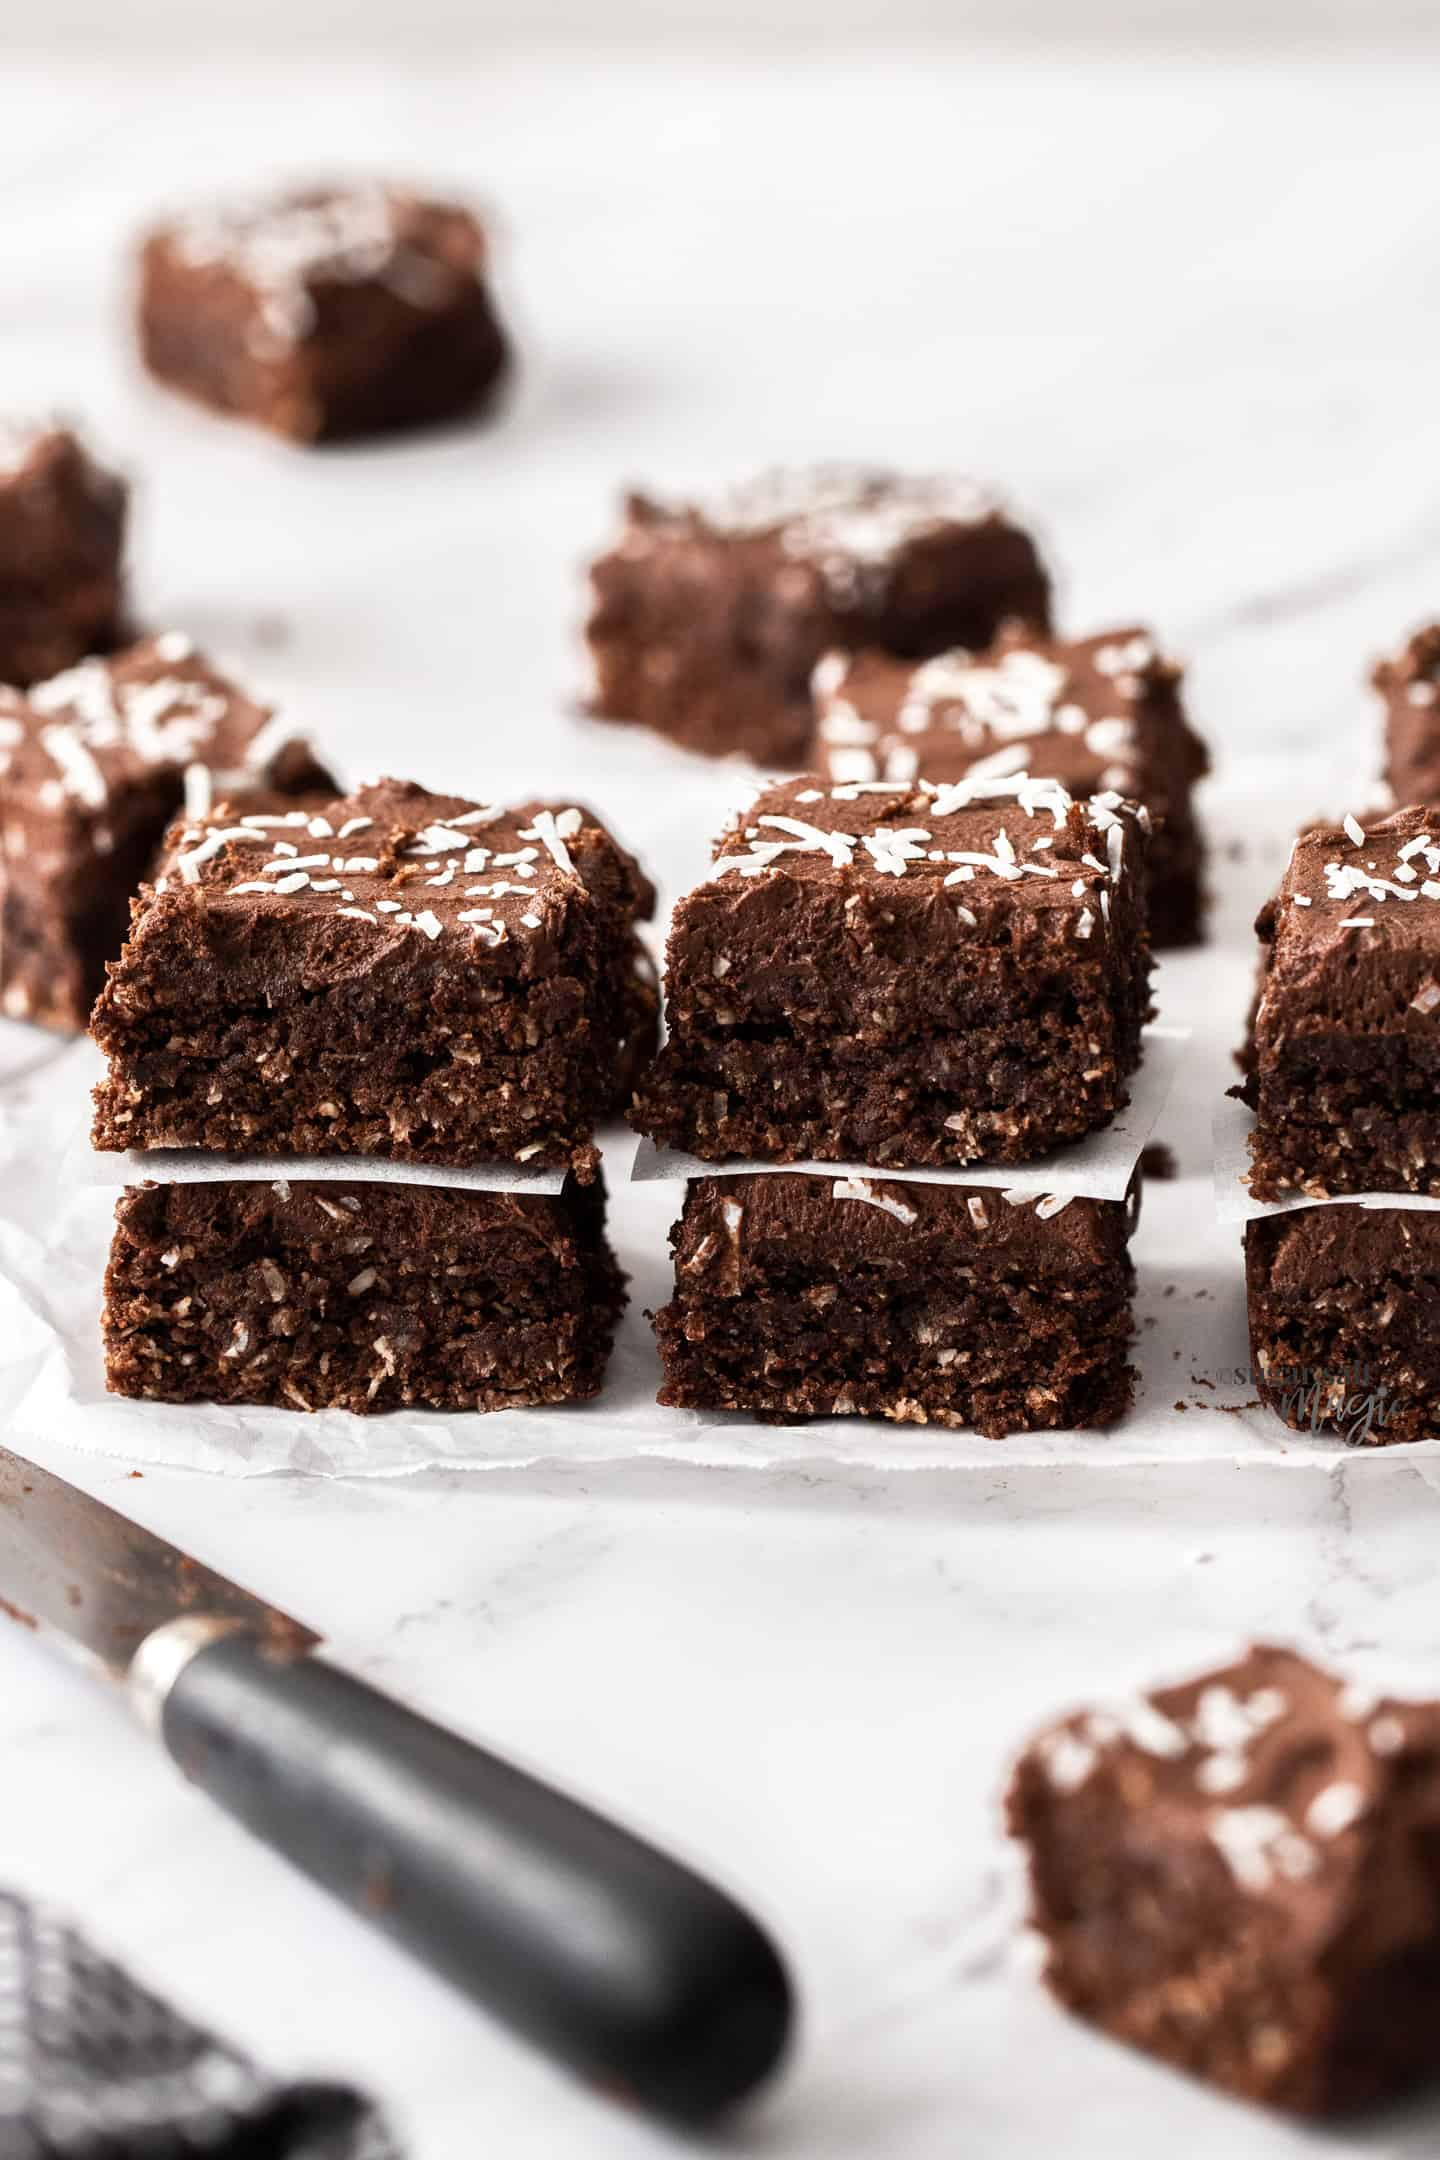 3 stacks of 2 pieces of coconut chocolate fudge slice with a knife in front.